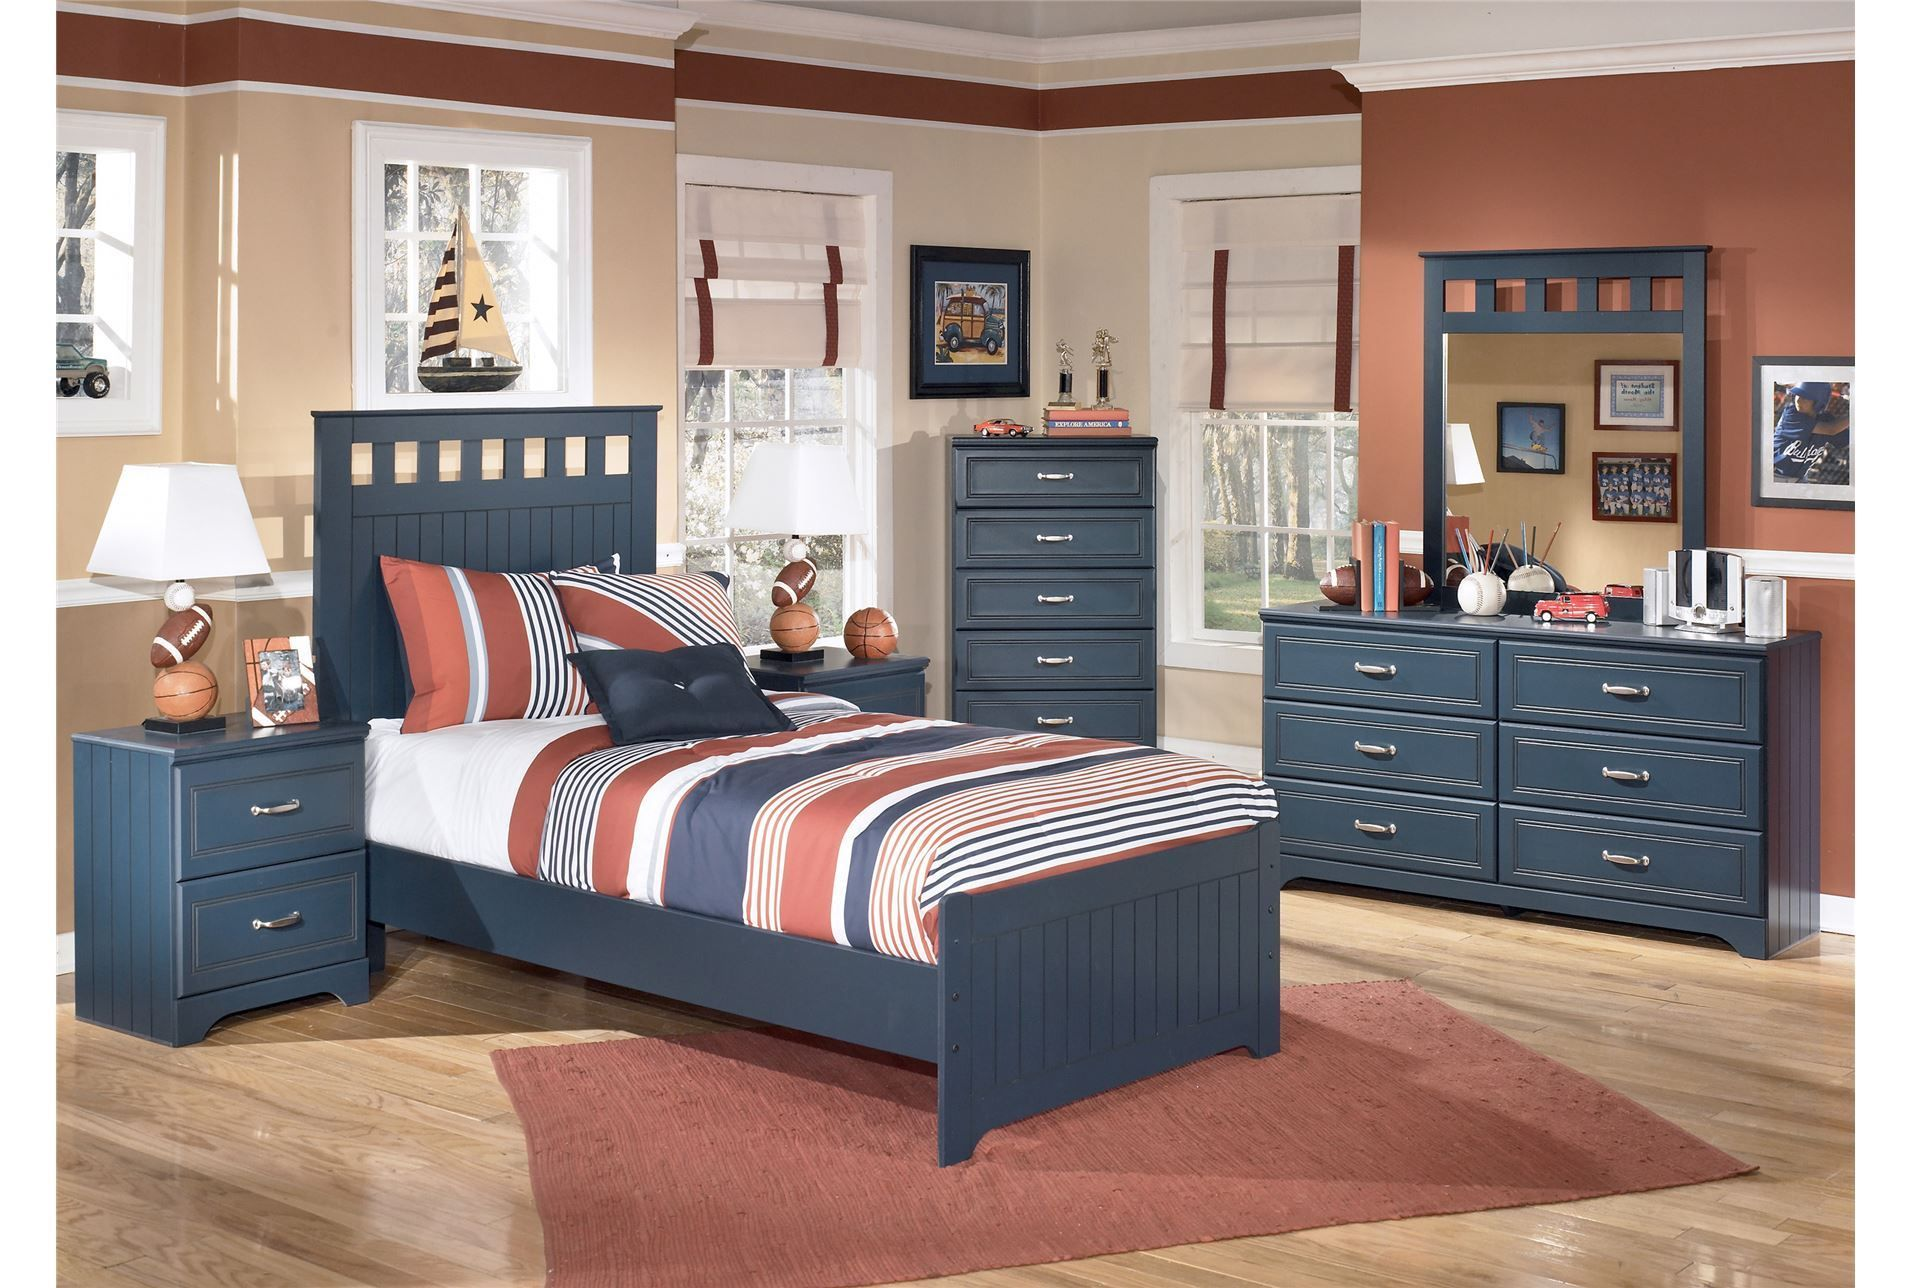 Leo twin panel bed house pinterest twins online furniture